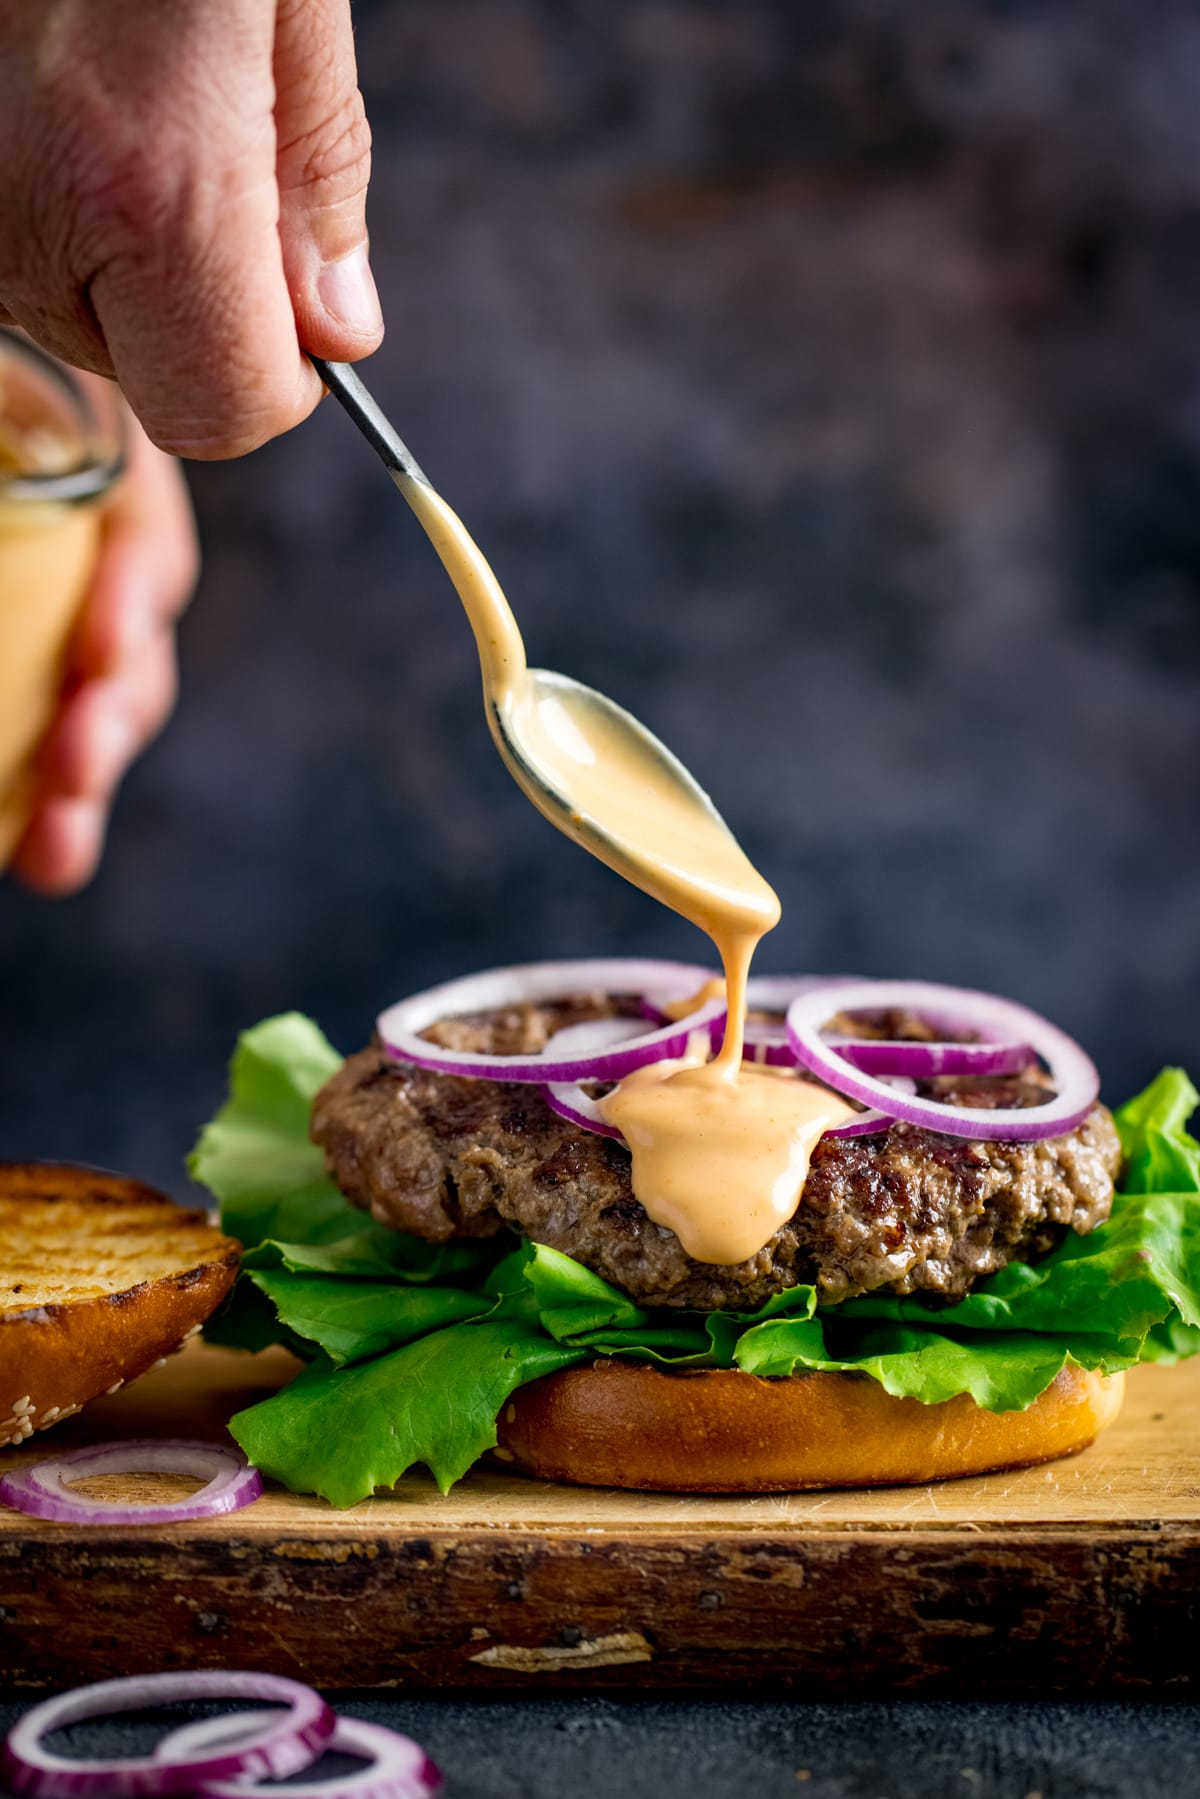 Burger sauce being drizzled from a spoon onto an open burger.